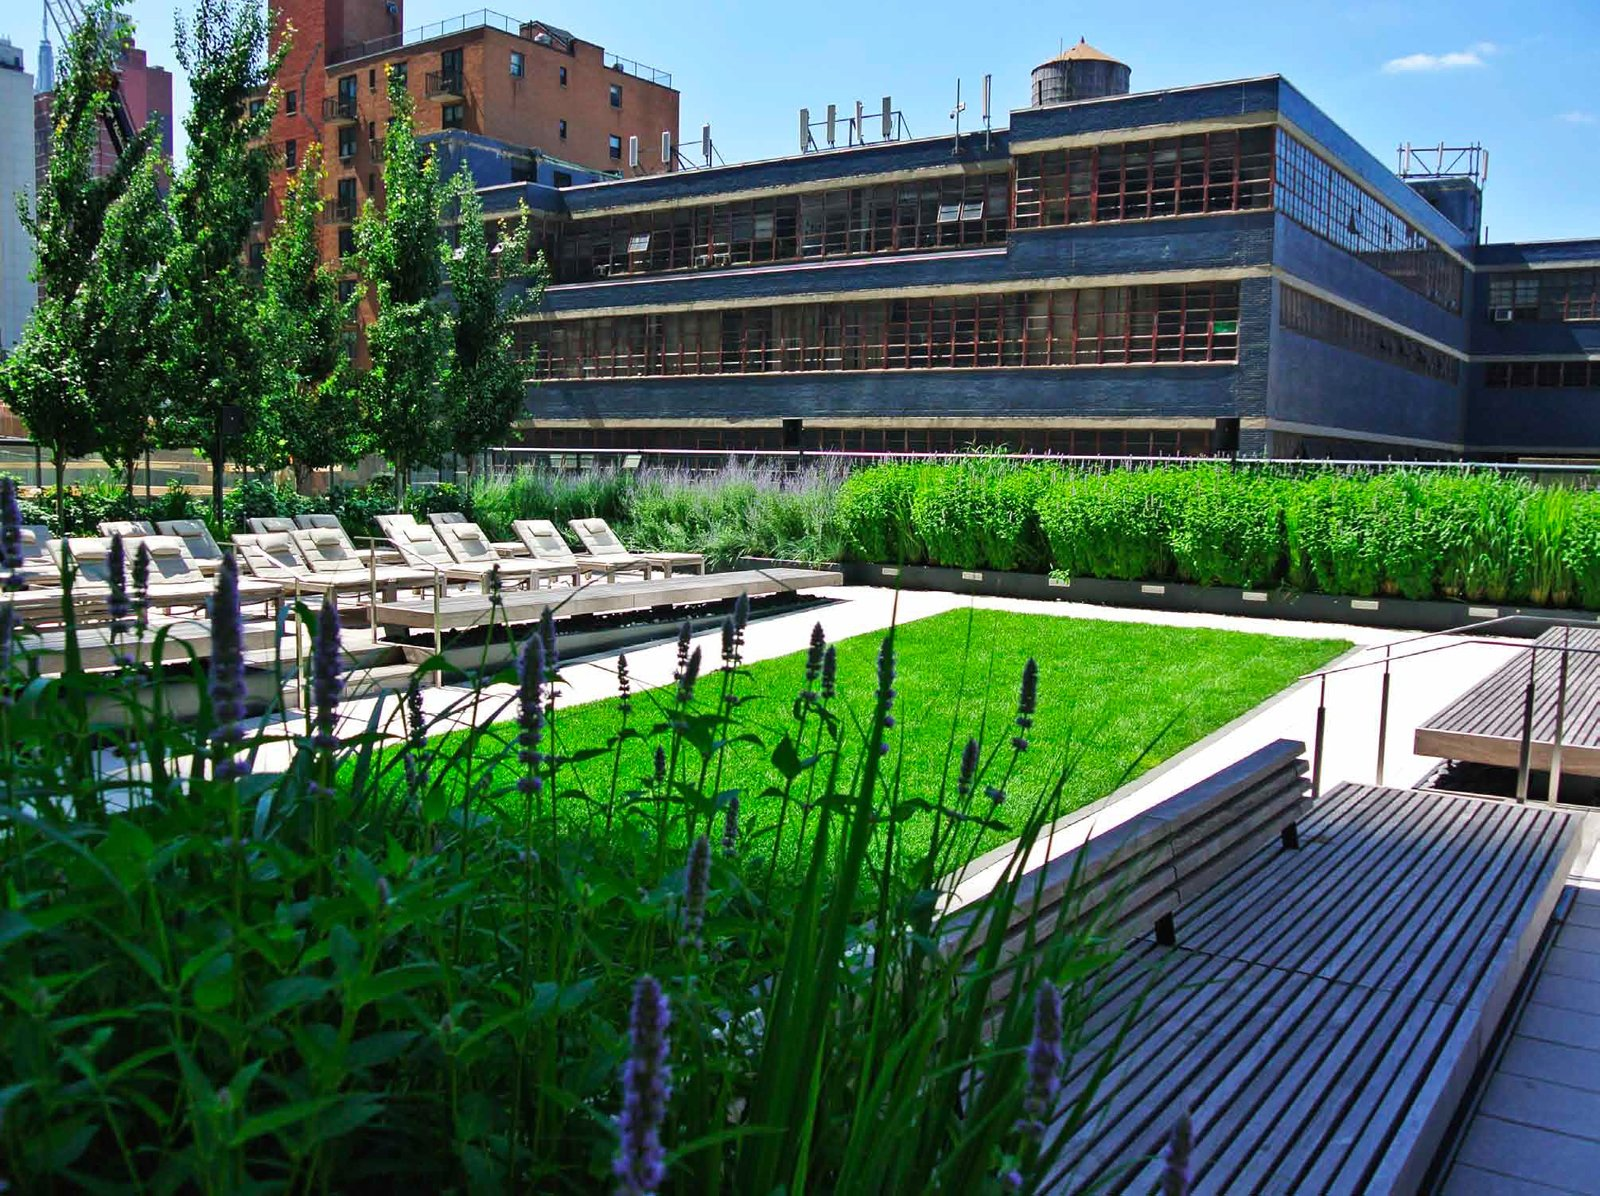 HM White Site Architects used the MiMA roof terraces to link interior amenity spaces and create green respites in the middle of Times Square. Green roof technology, thermal battery protection, storm water absorption and drought tolerant native plants helped the project earn Gold LEED certification. Photo courtesy of HM White Site Architects.  New York Landscape Architects Design Awards by Sara Carpenter